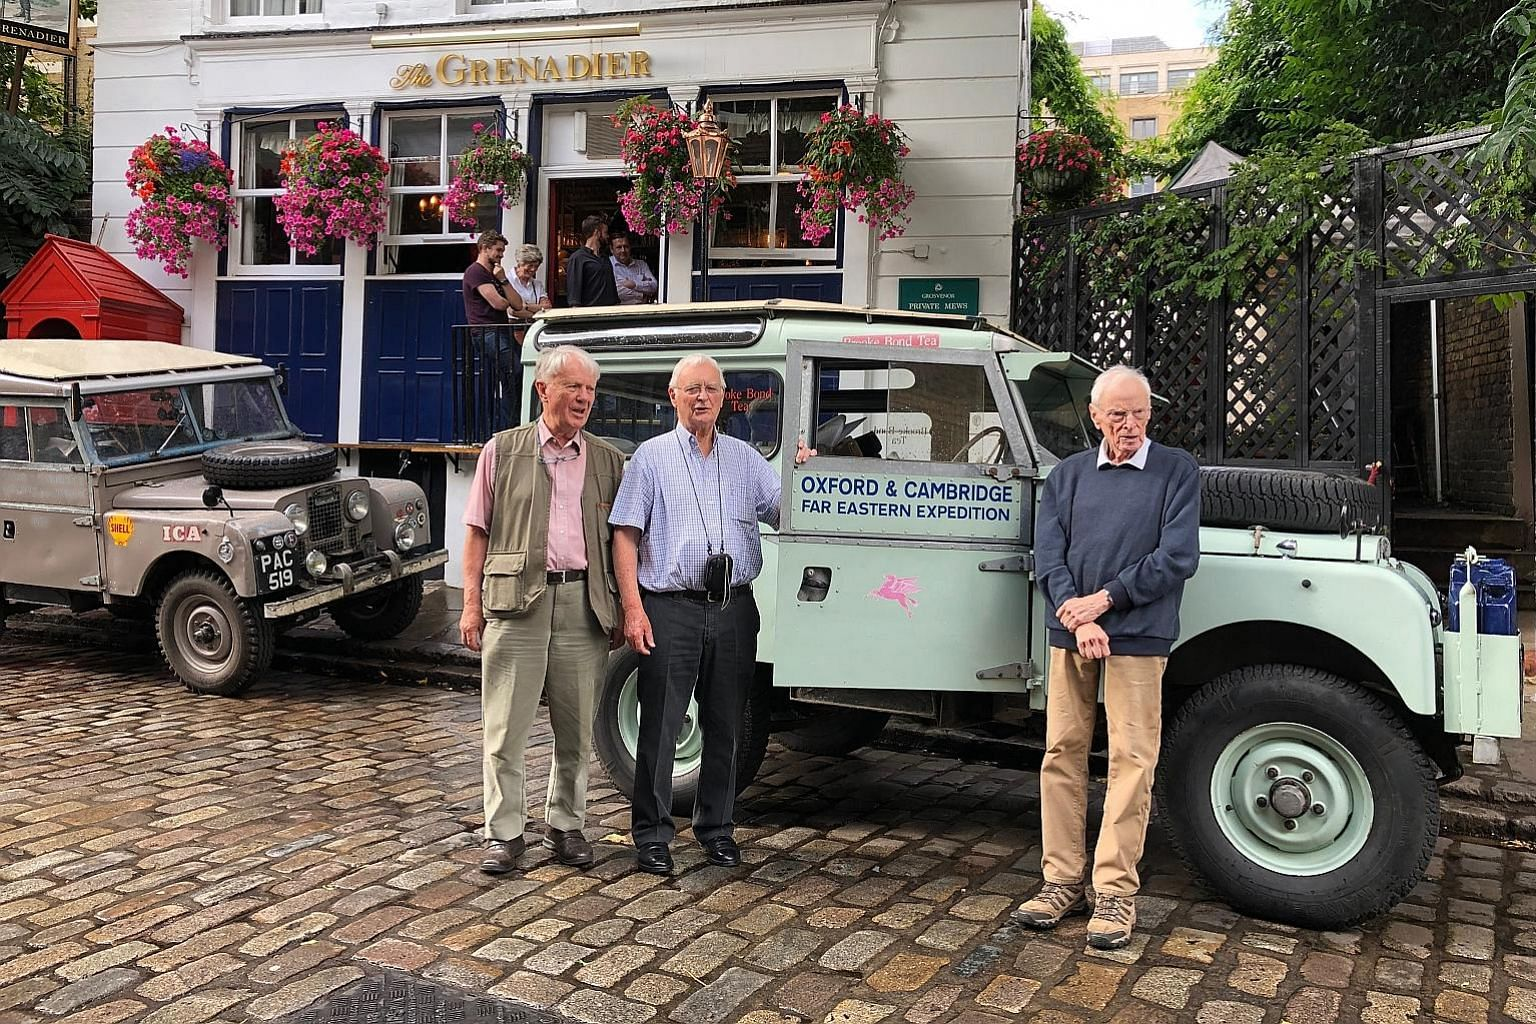 (From left) Mr Nigel Newbery, Mr Pat Murphy and Mr Tim Slessor, members of the 1955 overland trip from London to Singapore, with a replica of a Land Rover used on that trip. Mr Slessor is part of the team embarking on the Singapore to London trip on